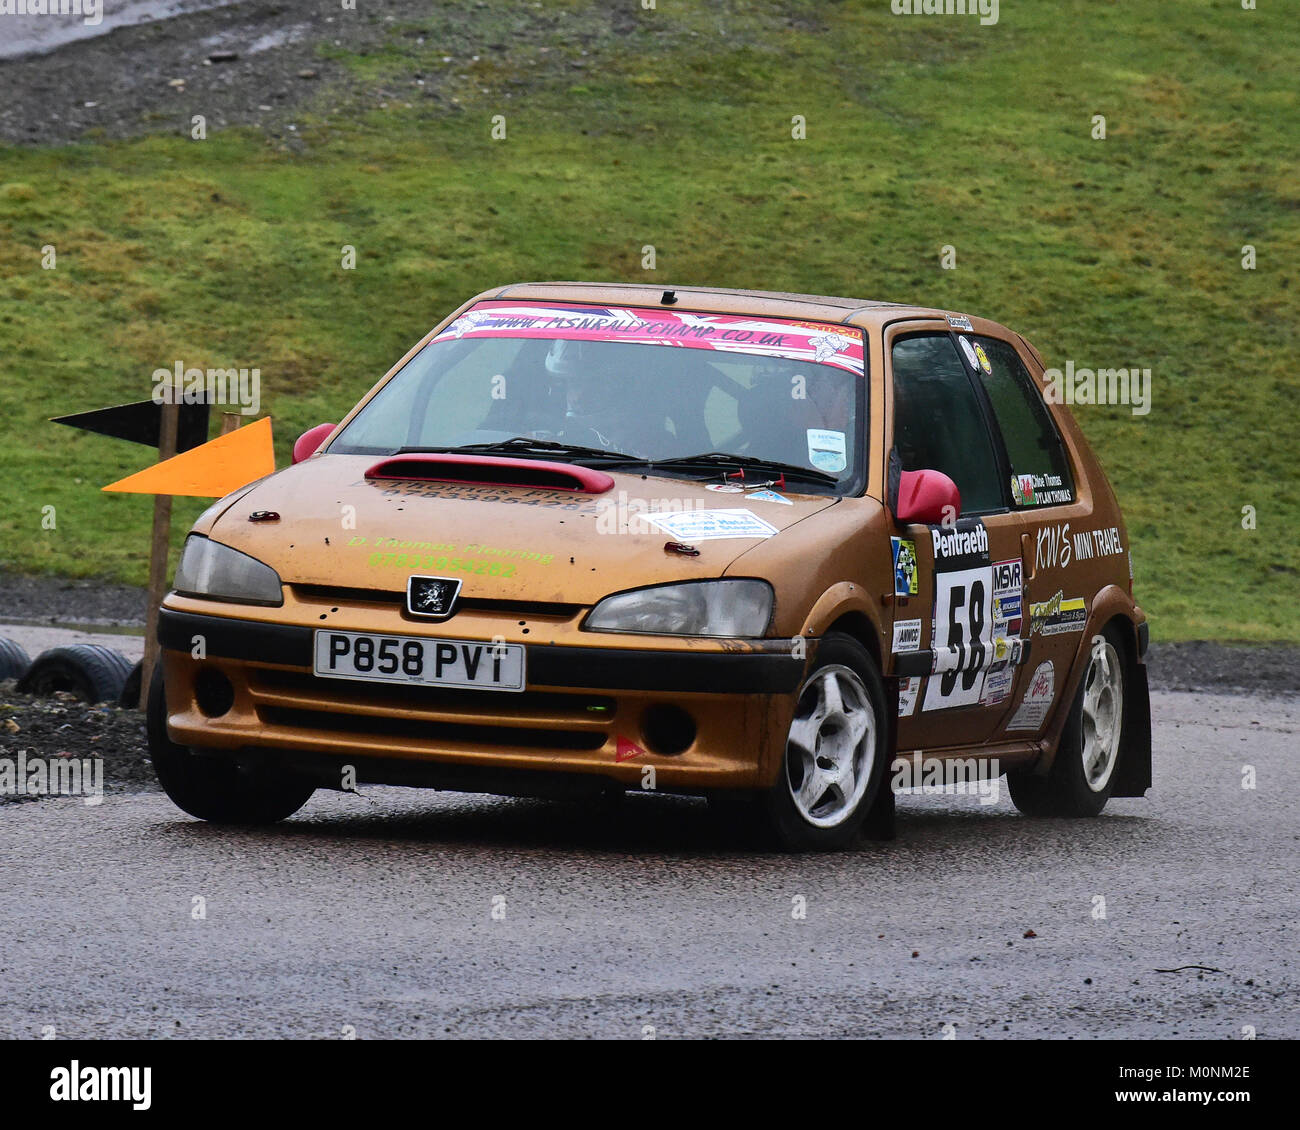 Dylan Thomas Chloe Thomas Peugeot 106 Gti Mgj Rally Stages Stock Photo Alamy